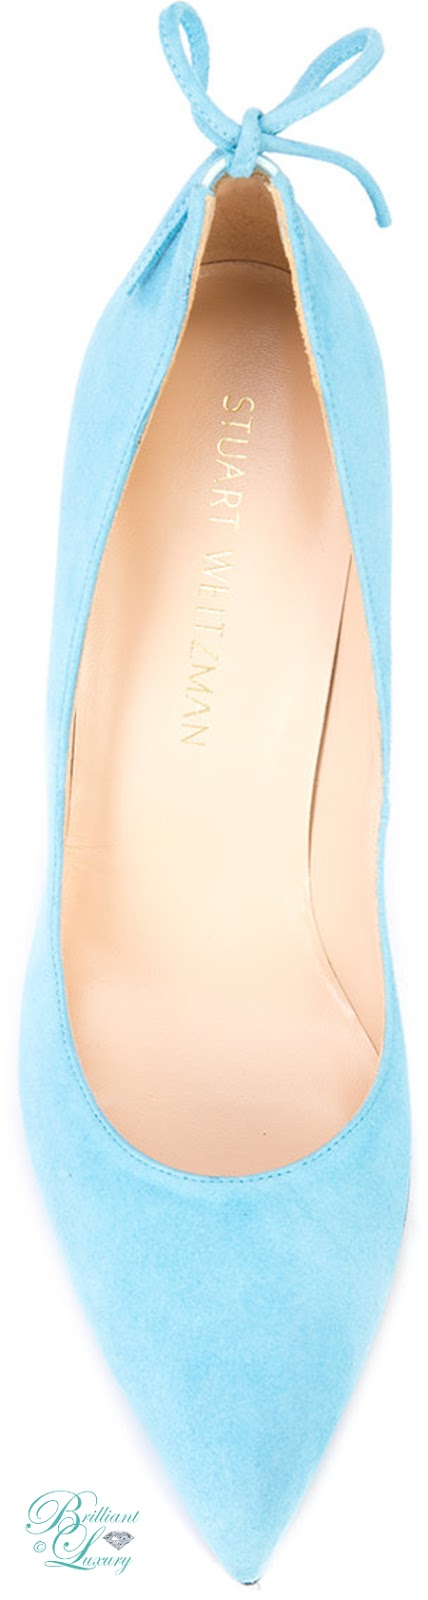 Brilliant Luxury ♦ Stuart Weitzman Peekabow Pumps